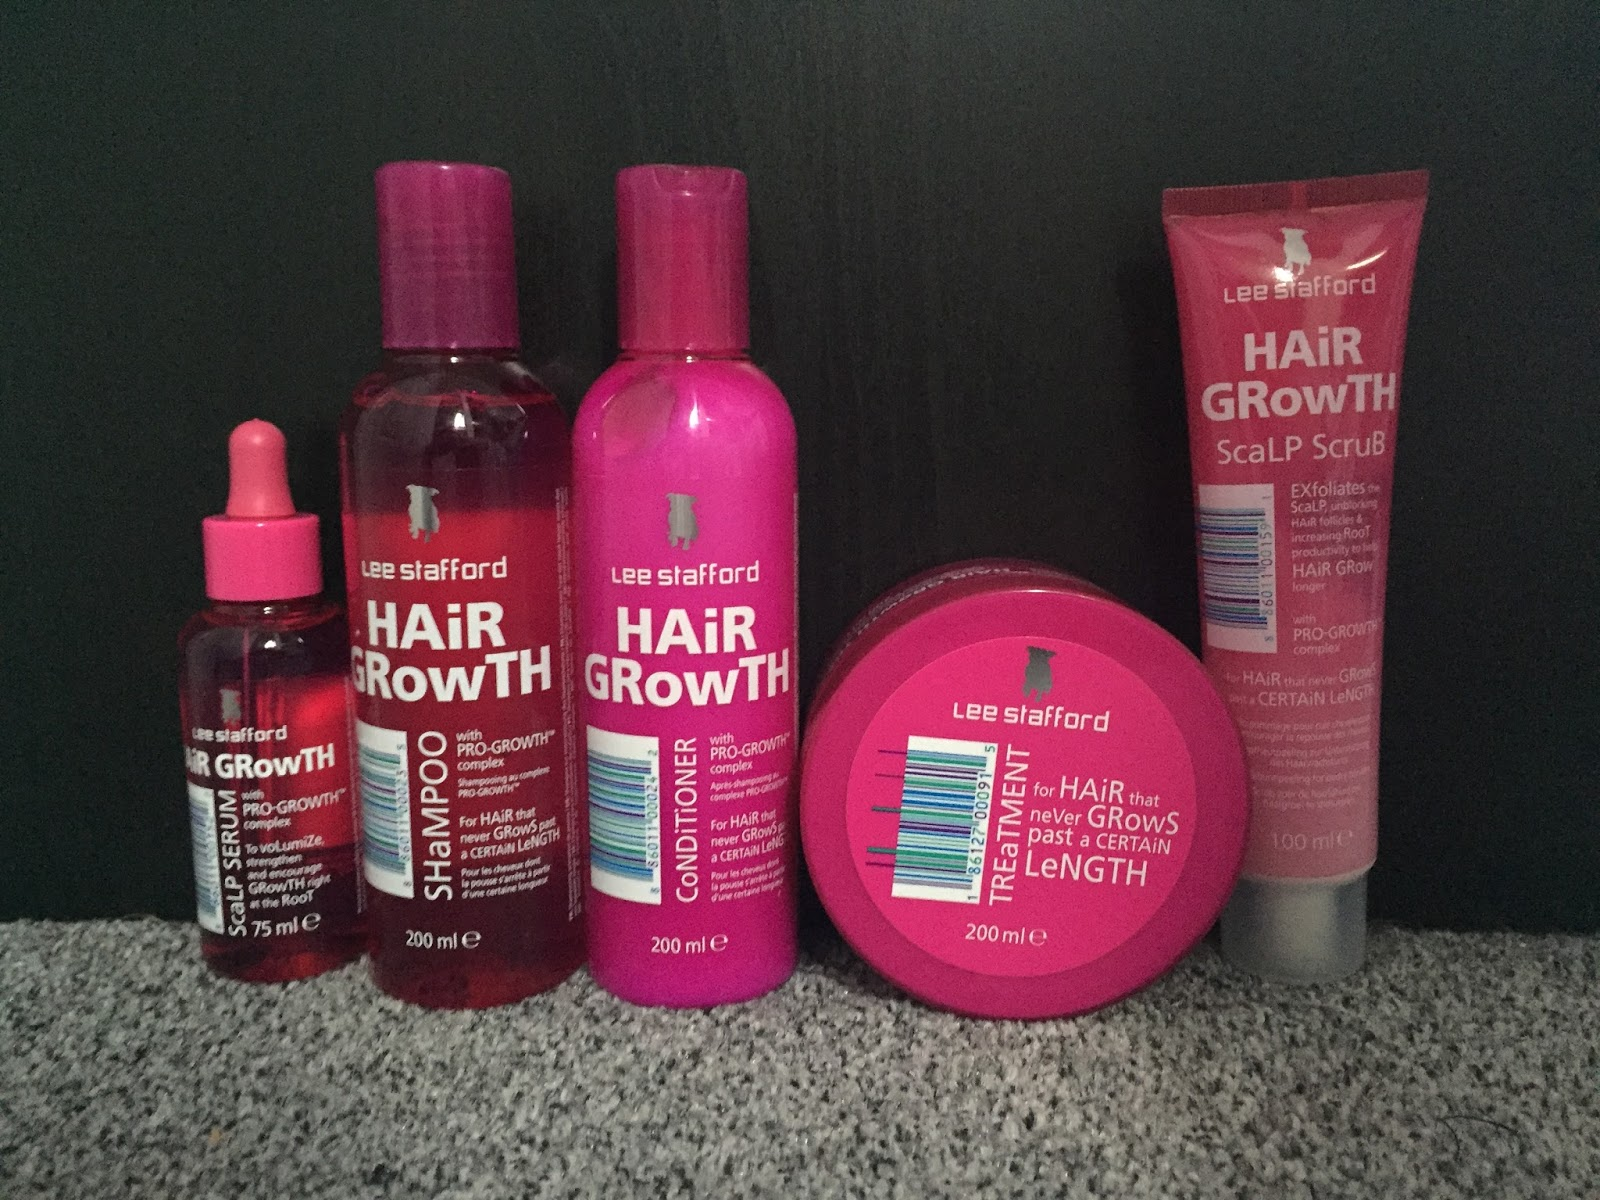 Lee Stafford: Hair Growth Range